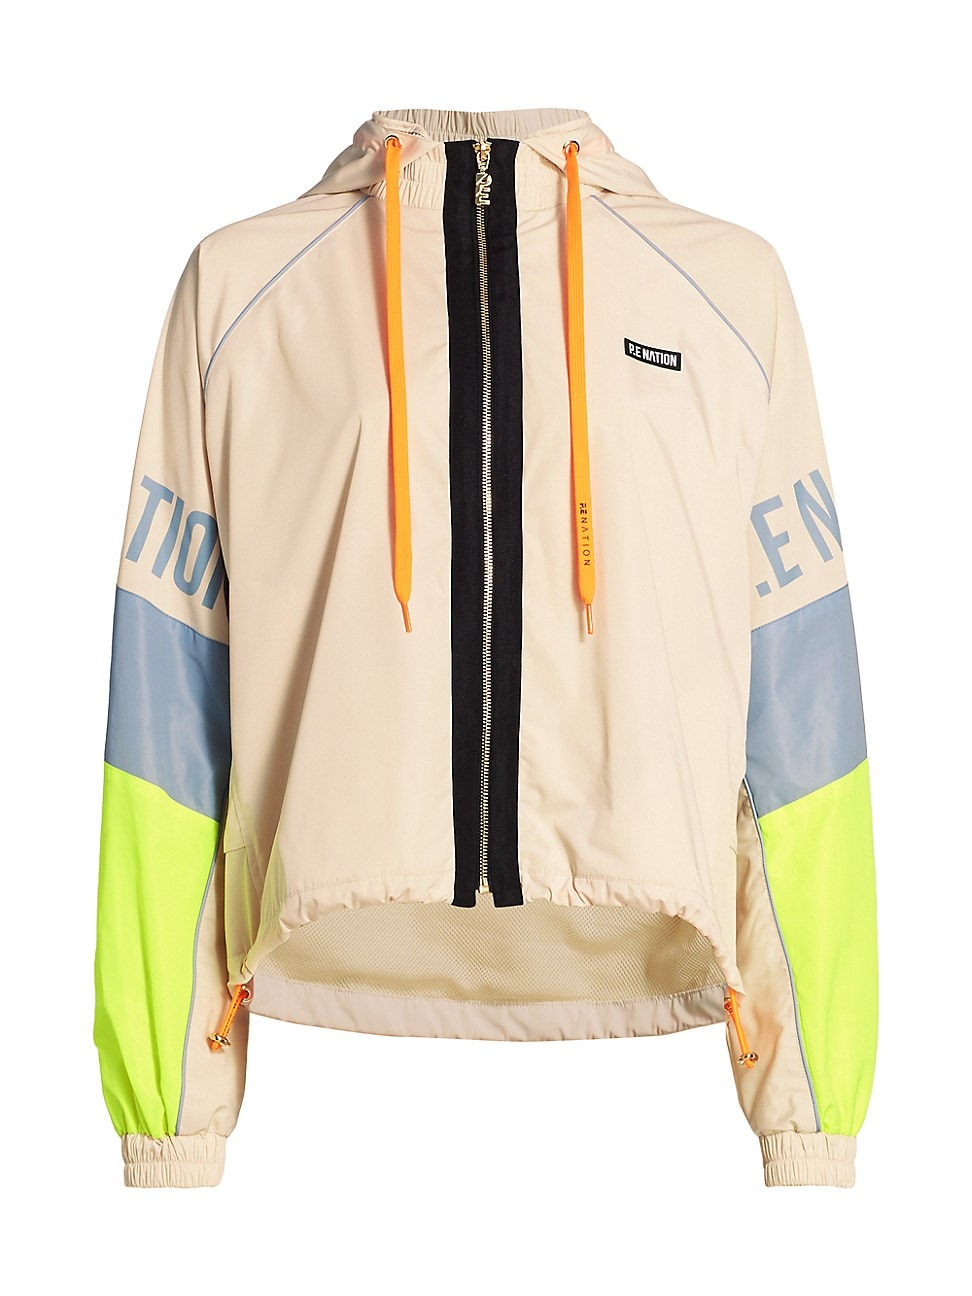 P.e Nation WOMEN'S FIRST POSITION COLORBLOCKED JACKET